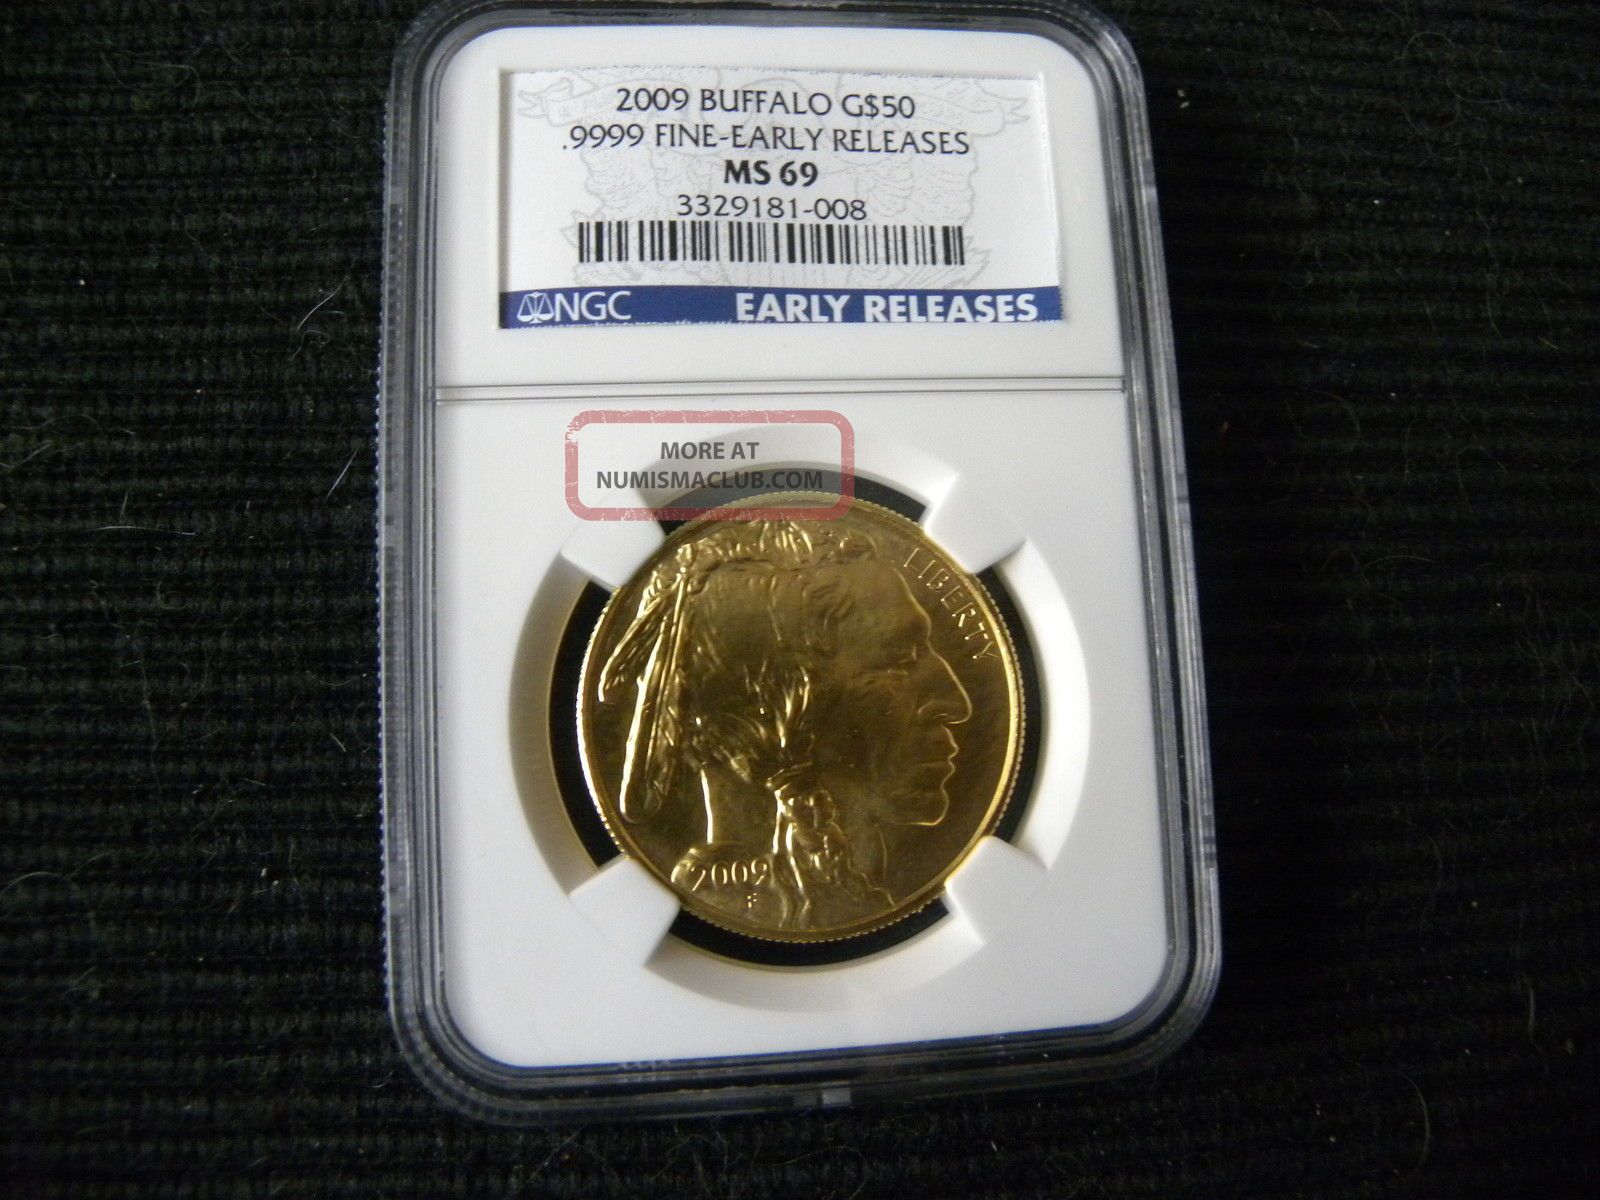 2009 Gold Buffalo G 50 9999 Fine Early Releases Ngc Ms69 1 Oz